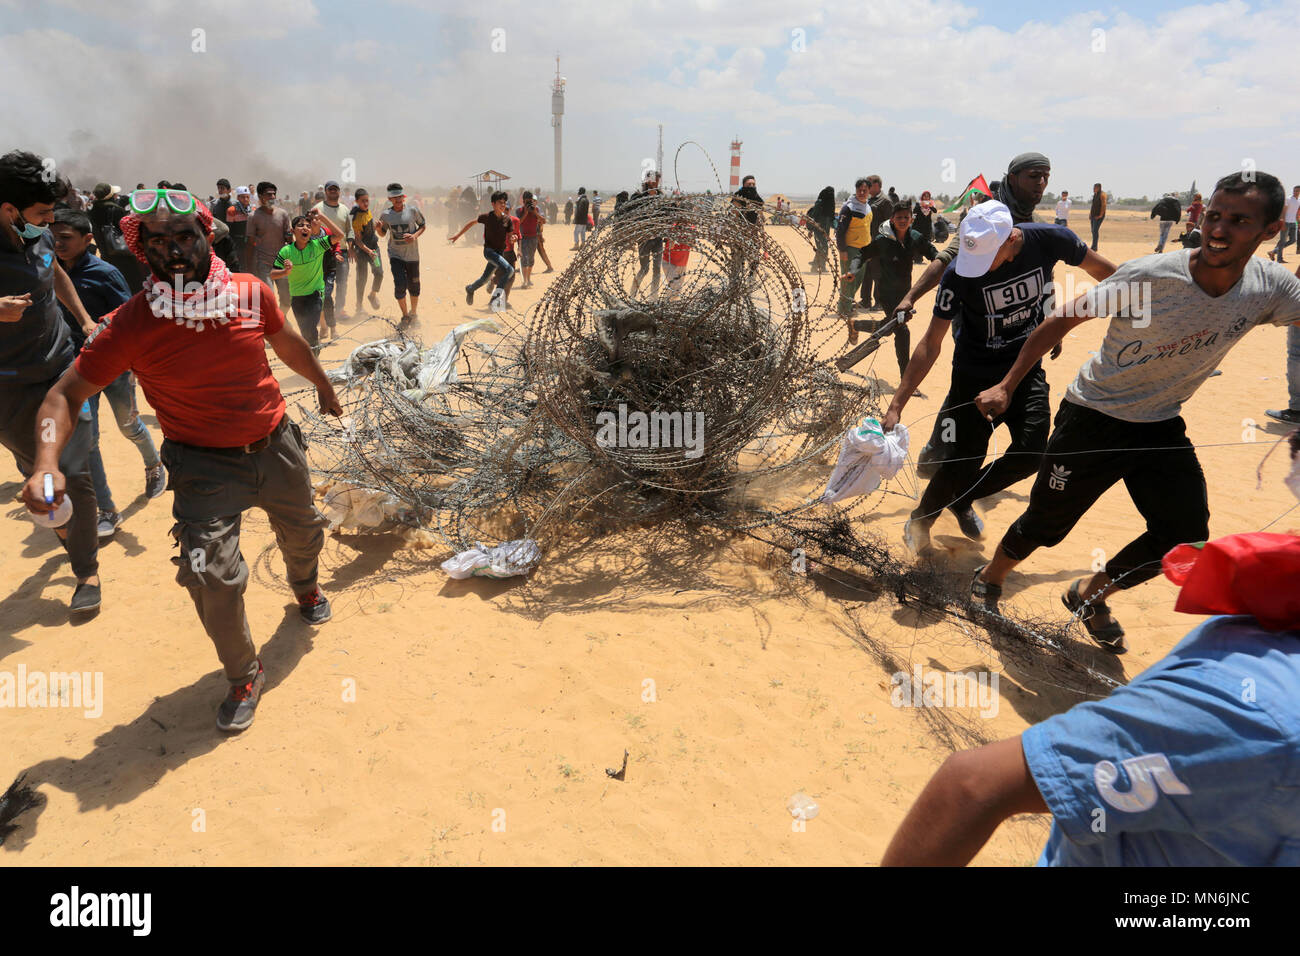 GAZA, PALESTINIAN TERRITORIES - 14 MAY 2018 Palestinian demonstrators gesture towards Israeli forces during clashes along the border with the Gaza Str - Stock Image